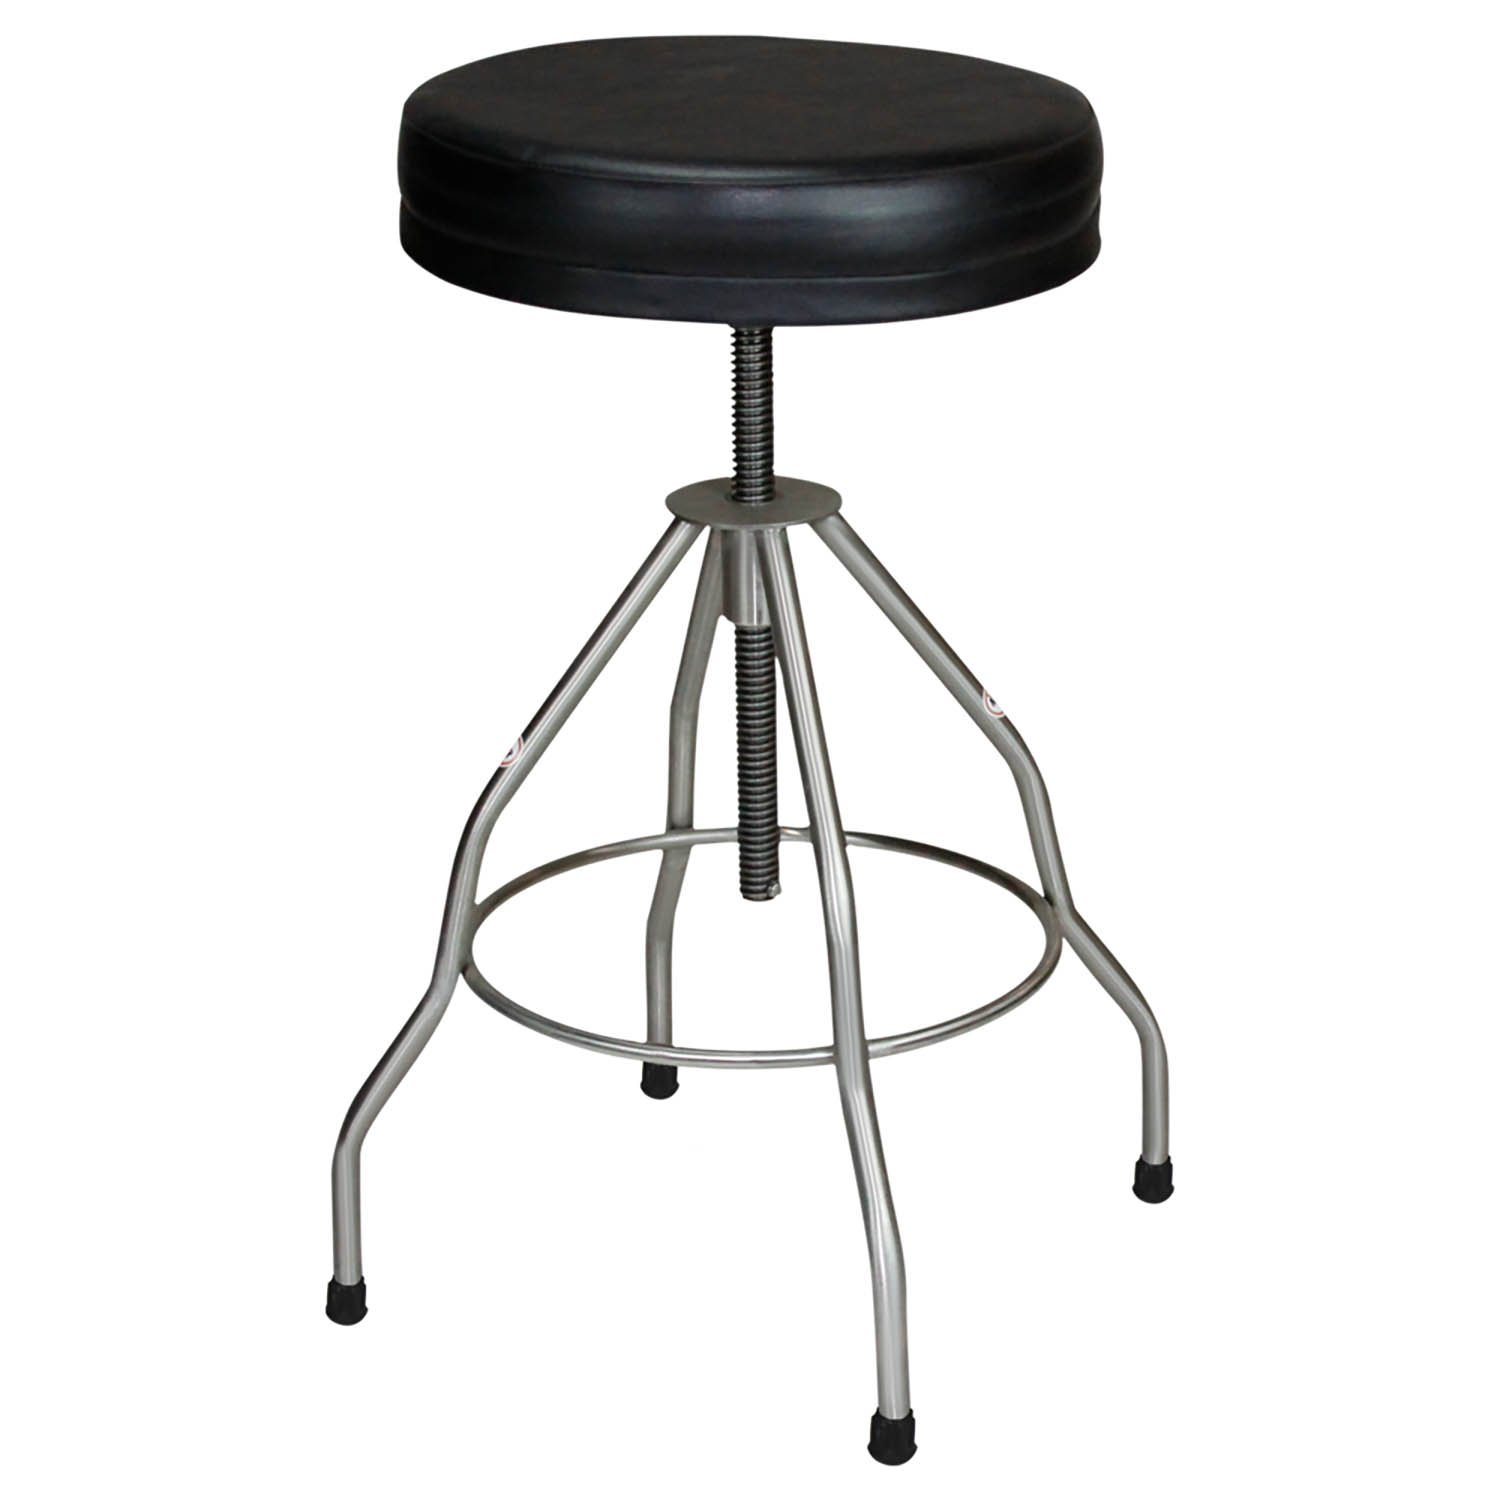 Stainless Steel Stool Recessed Seat with Pad & Rubber Tips